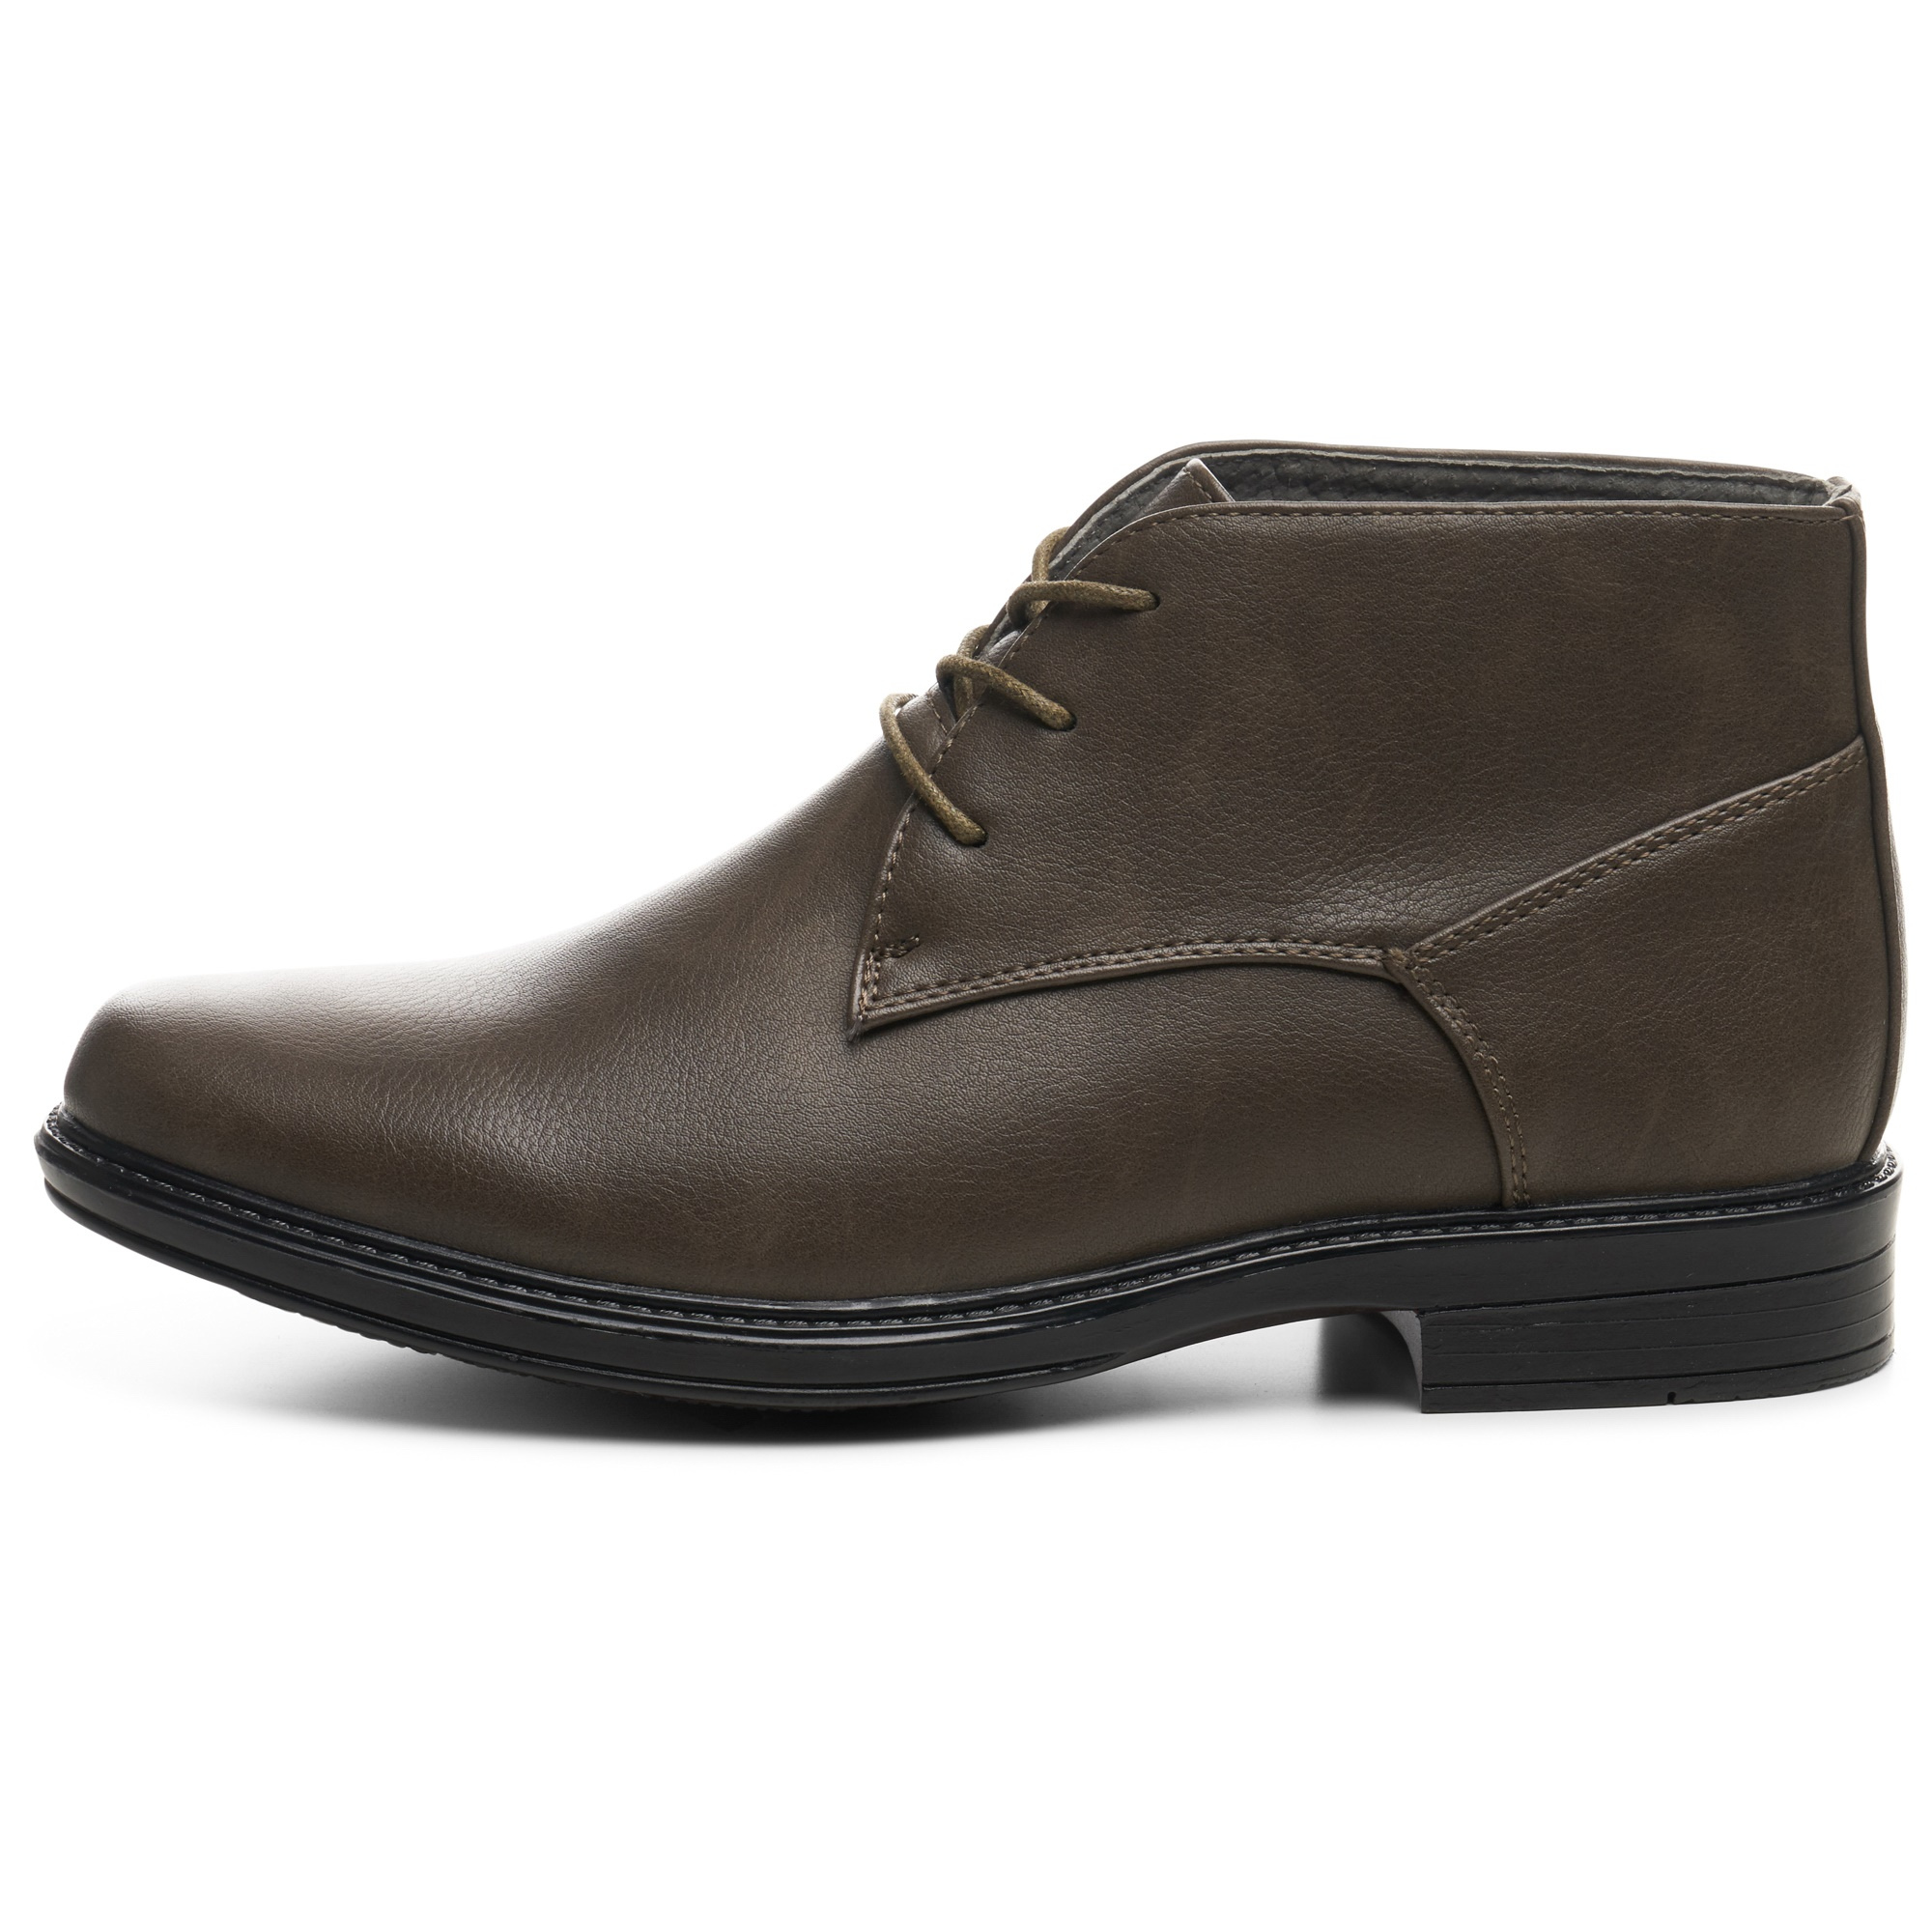 Alpine-Swiss-Mens-Ankle-Boots-Dressy-Casual-Leather-Lined-Dress-Shoes-Lace-up-NW miniature 27